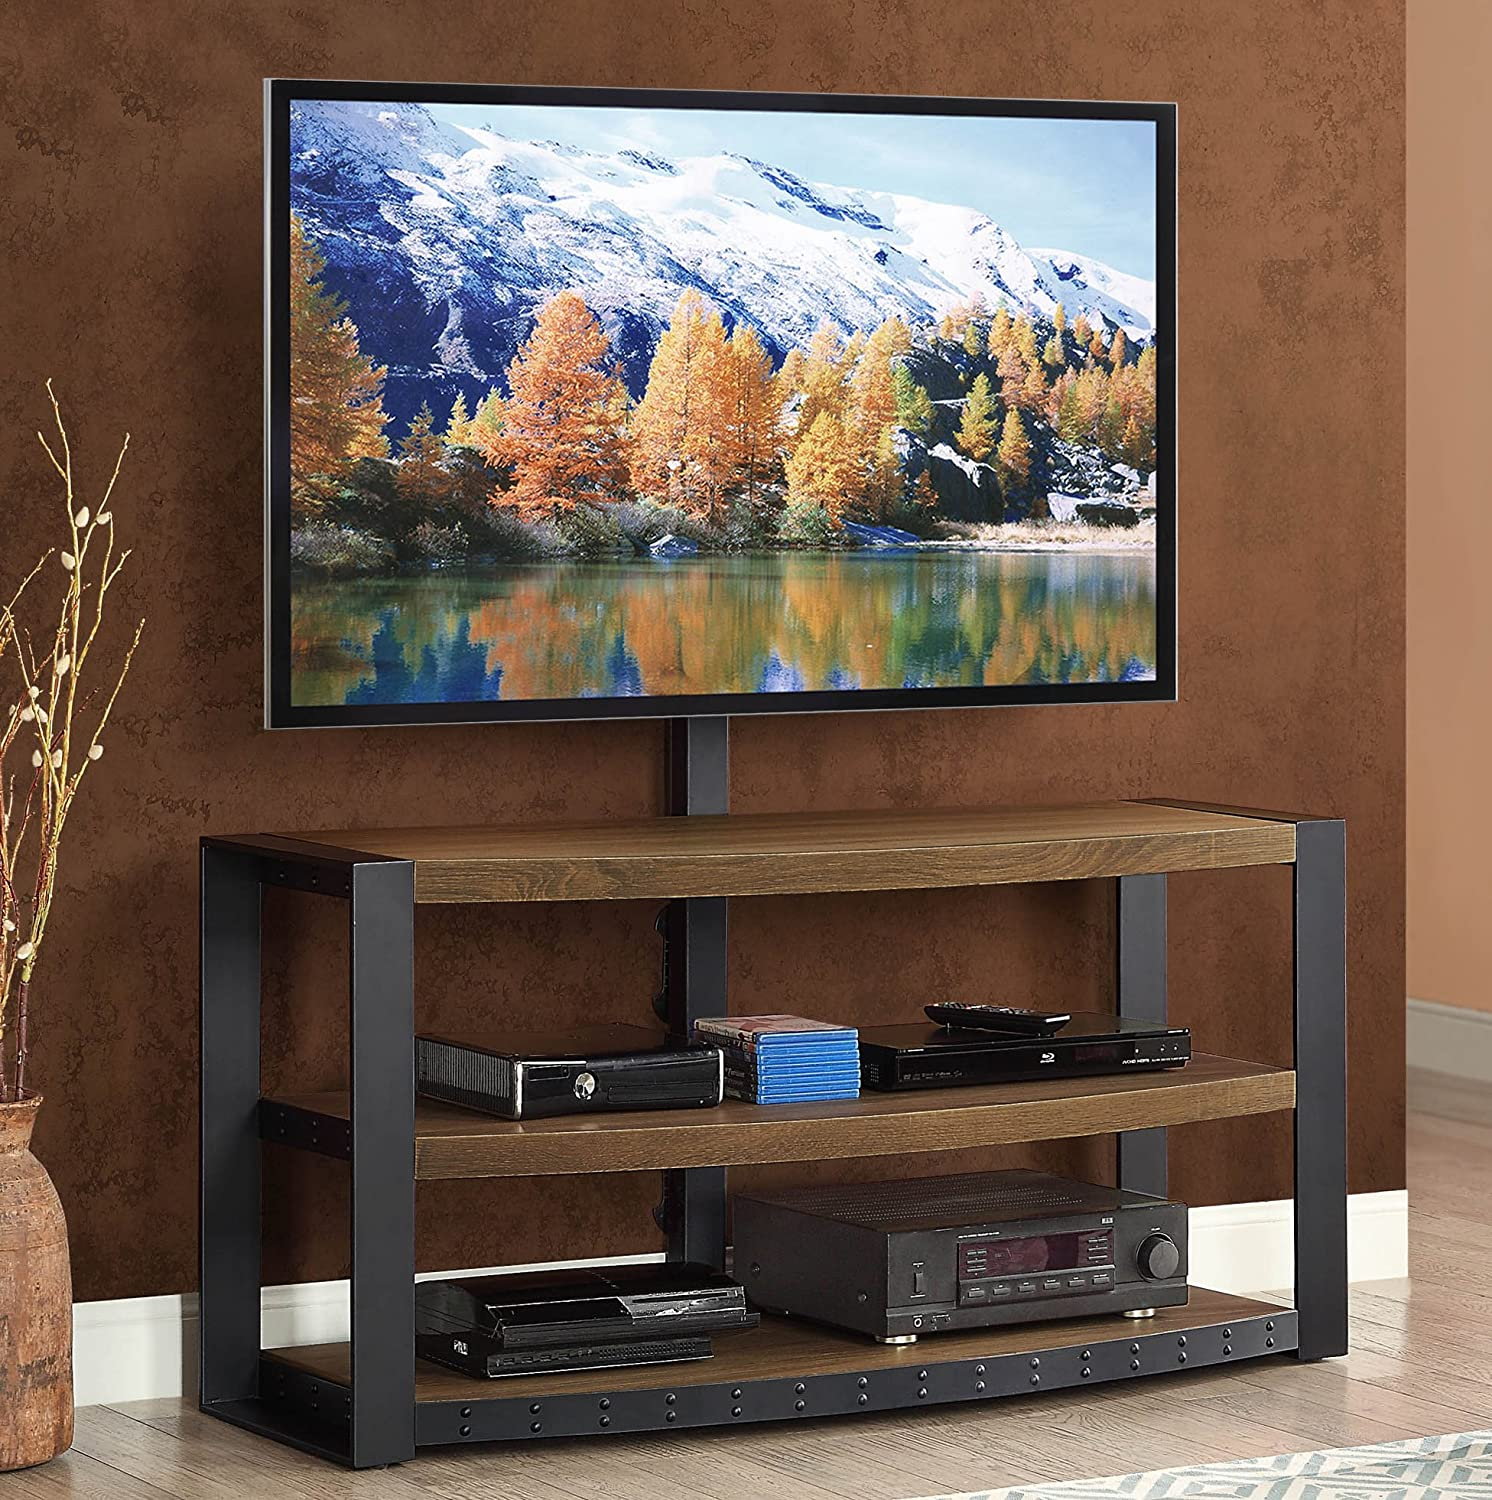 Top 10 Best TV Stands With Mount For 60 Inch Screen Reviews 2016 On Flipboard